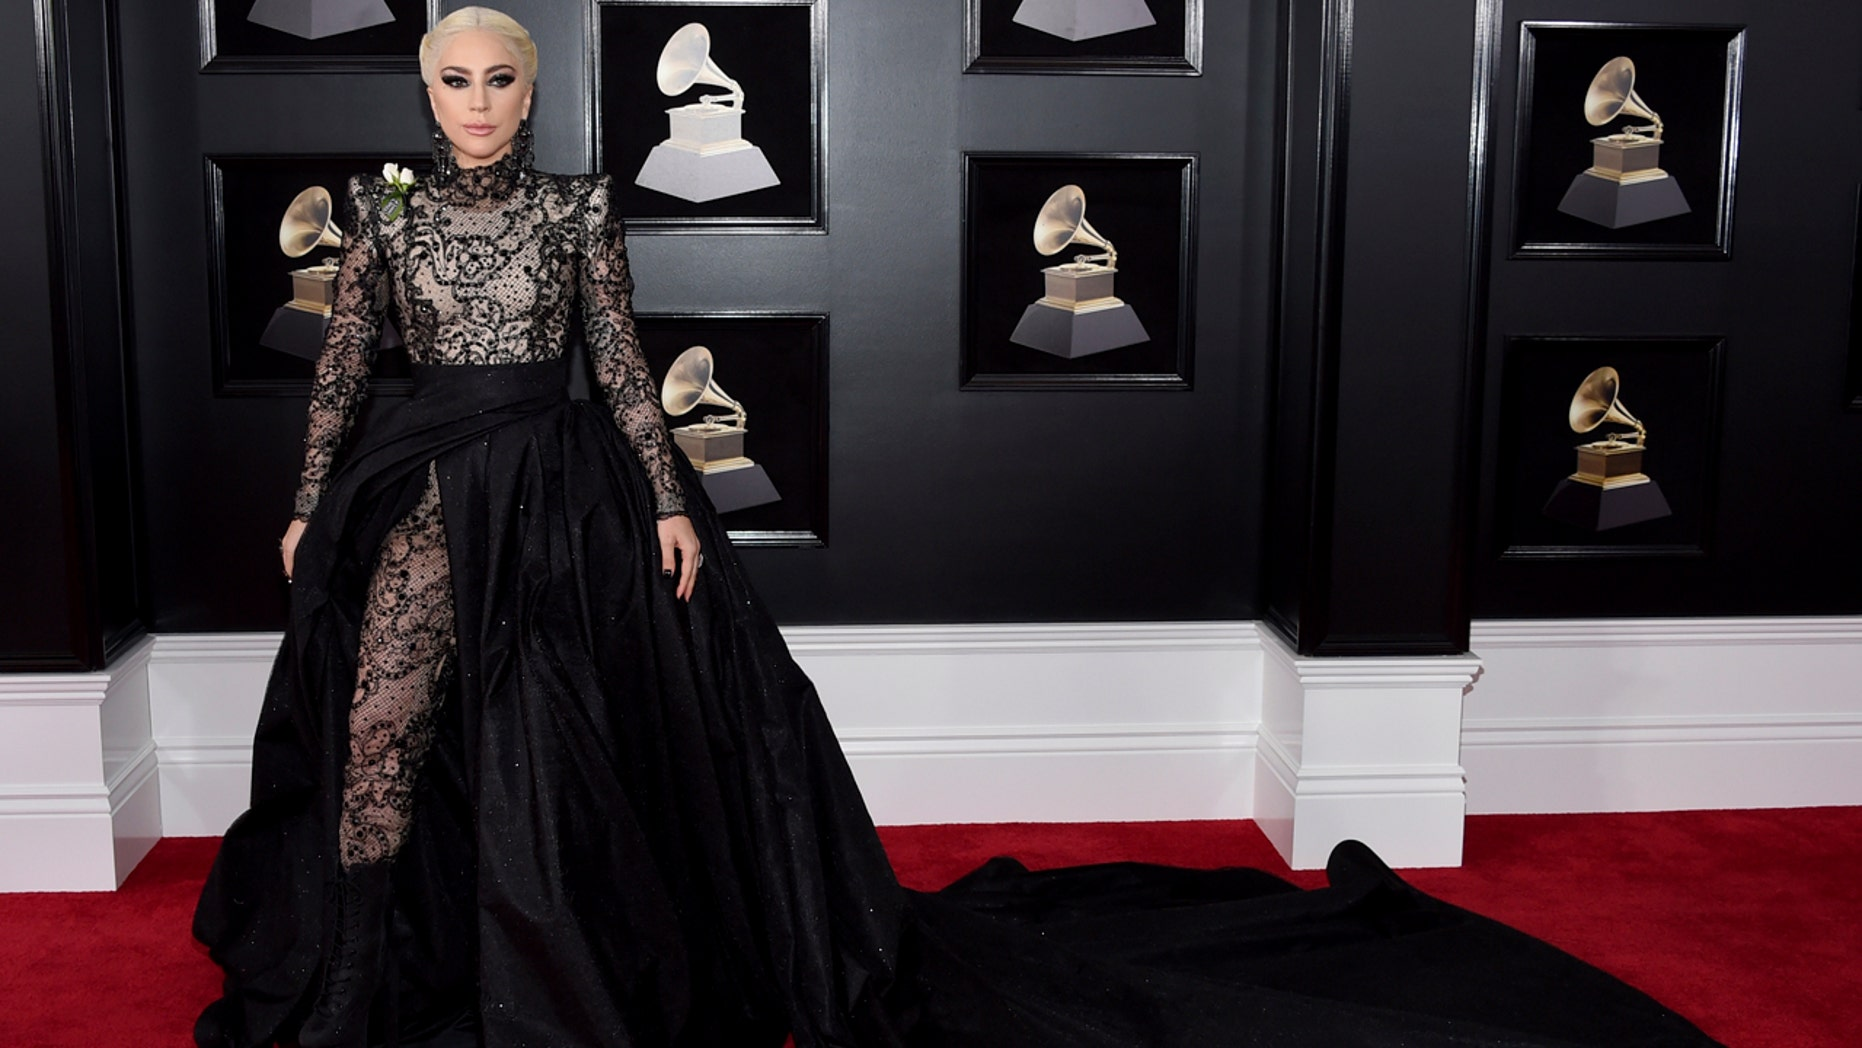 Lady Gaga turned heads in a black, satin ball gown with a sheer and embellished, high neck top. The skirt of the dress was also featured embellished, sheer pants underneath.